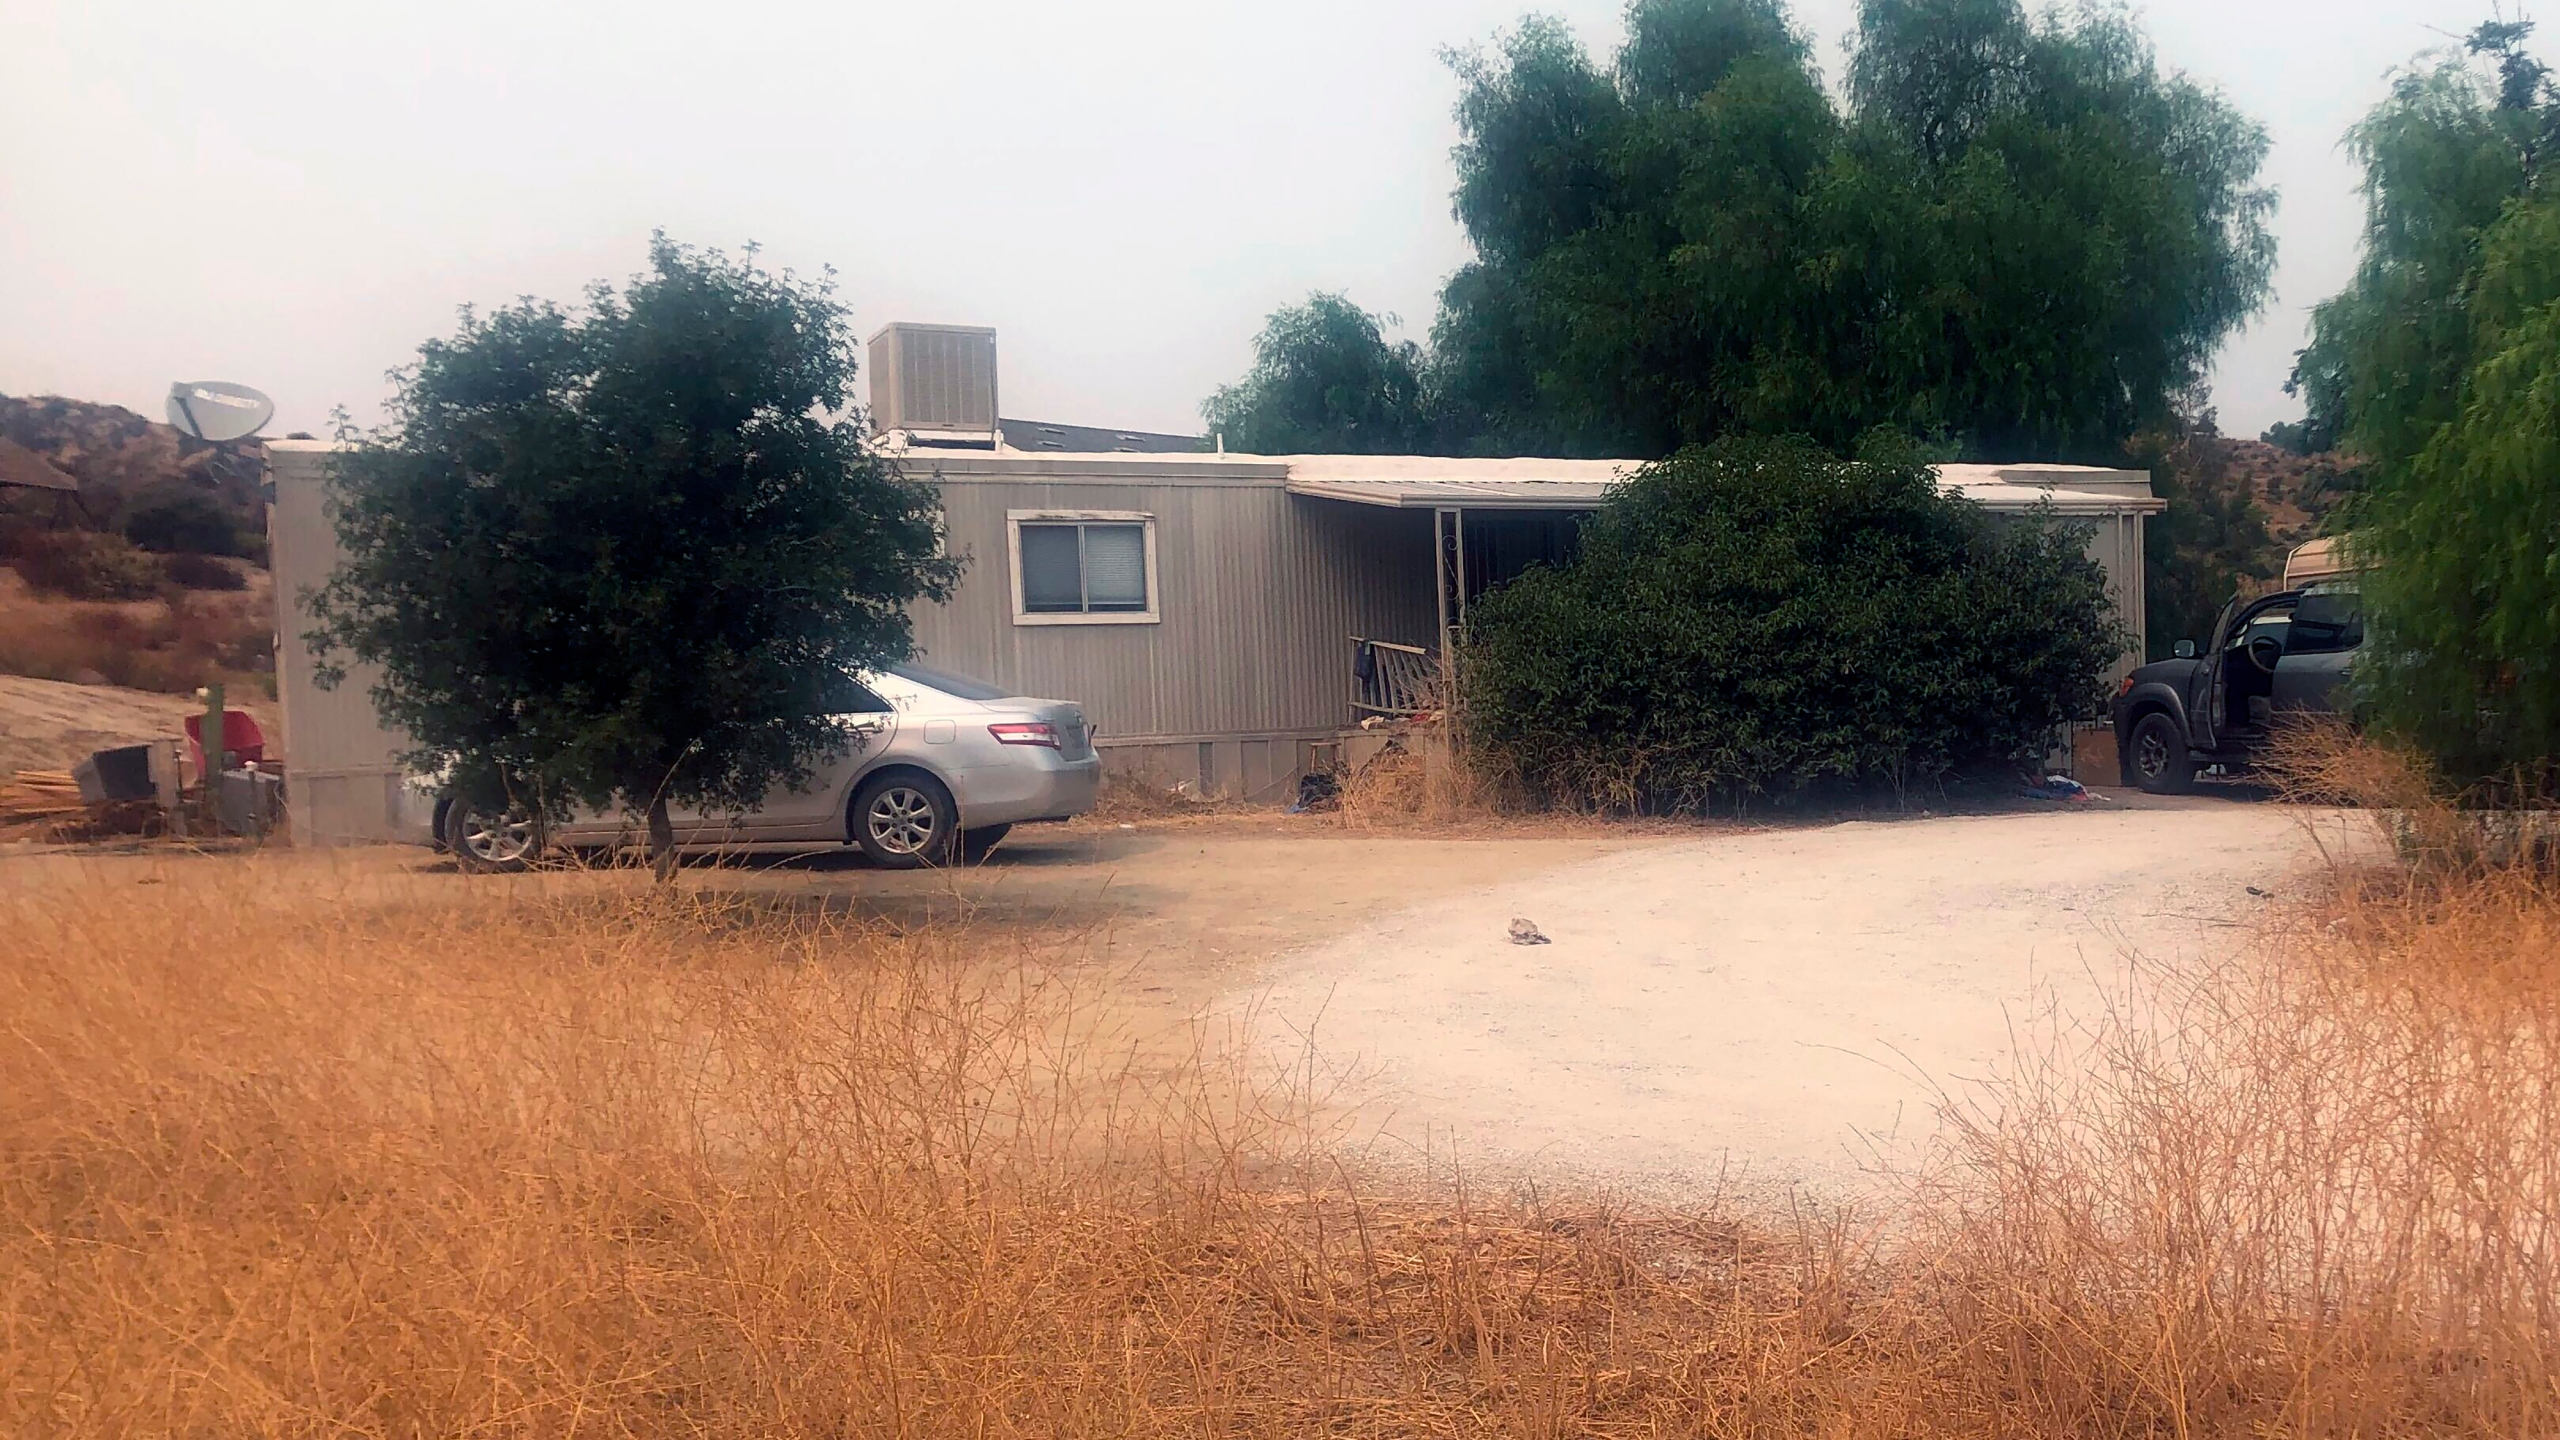 A car is left parked at a house where killings occurred in the rural town Aguanga, Calif., Tuesday, Sept. 8, 2020. Seven people were found fatally shot at an illegal marijuana growing operation in Aguanga. The crime scene was discovered before dawn Monday, Sept. 7, after deputies responded to a report of an assault with a deadly weapon at a home in the unincorporated community of Aguanga, north of San Diego, the Riverside County Sheriff's Department said in a statement. (AP Photo/Elliot Spagat)